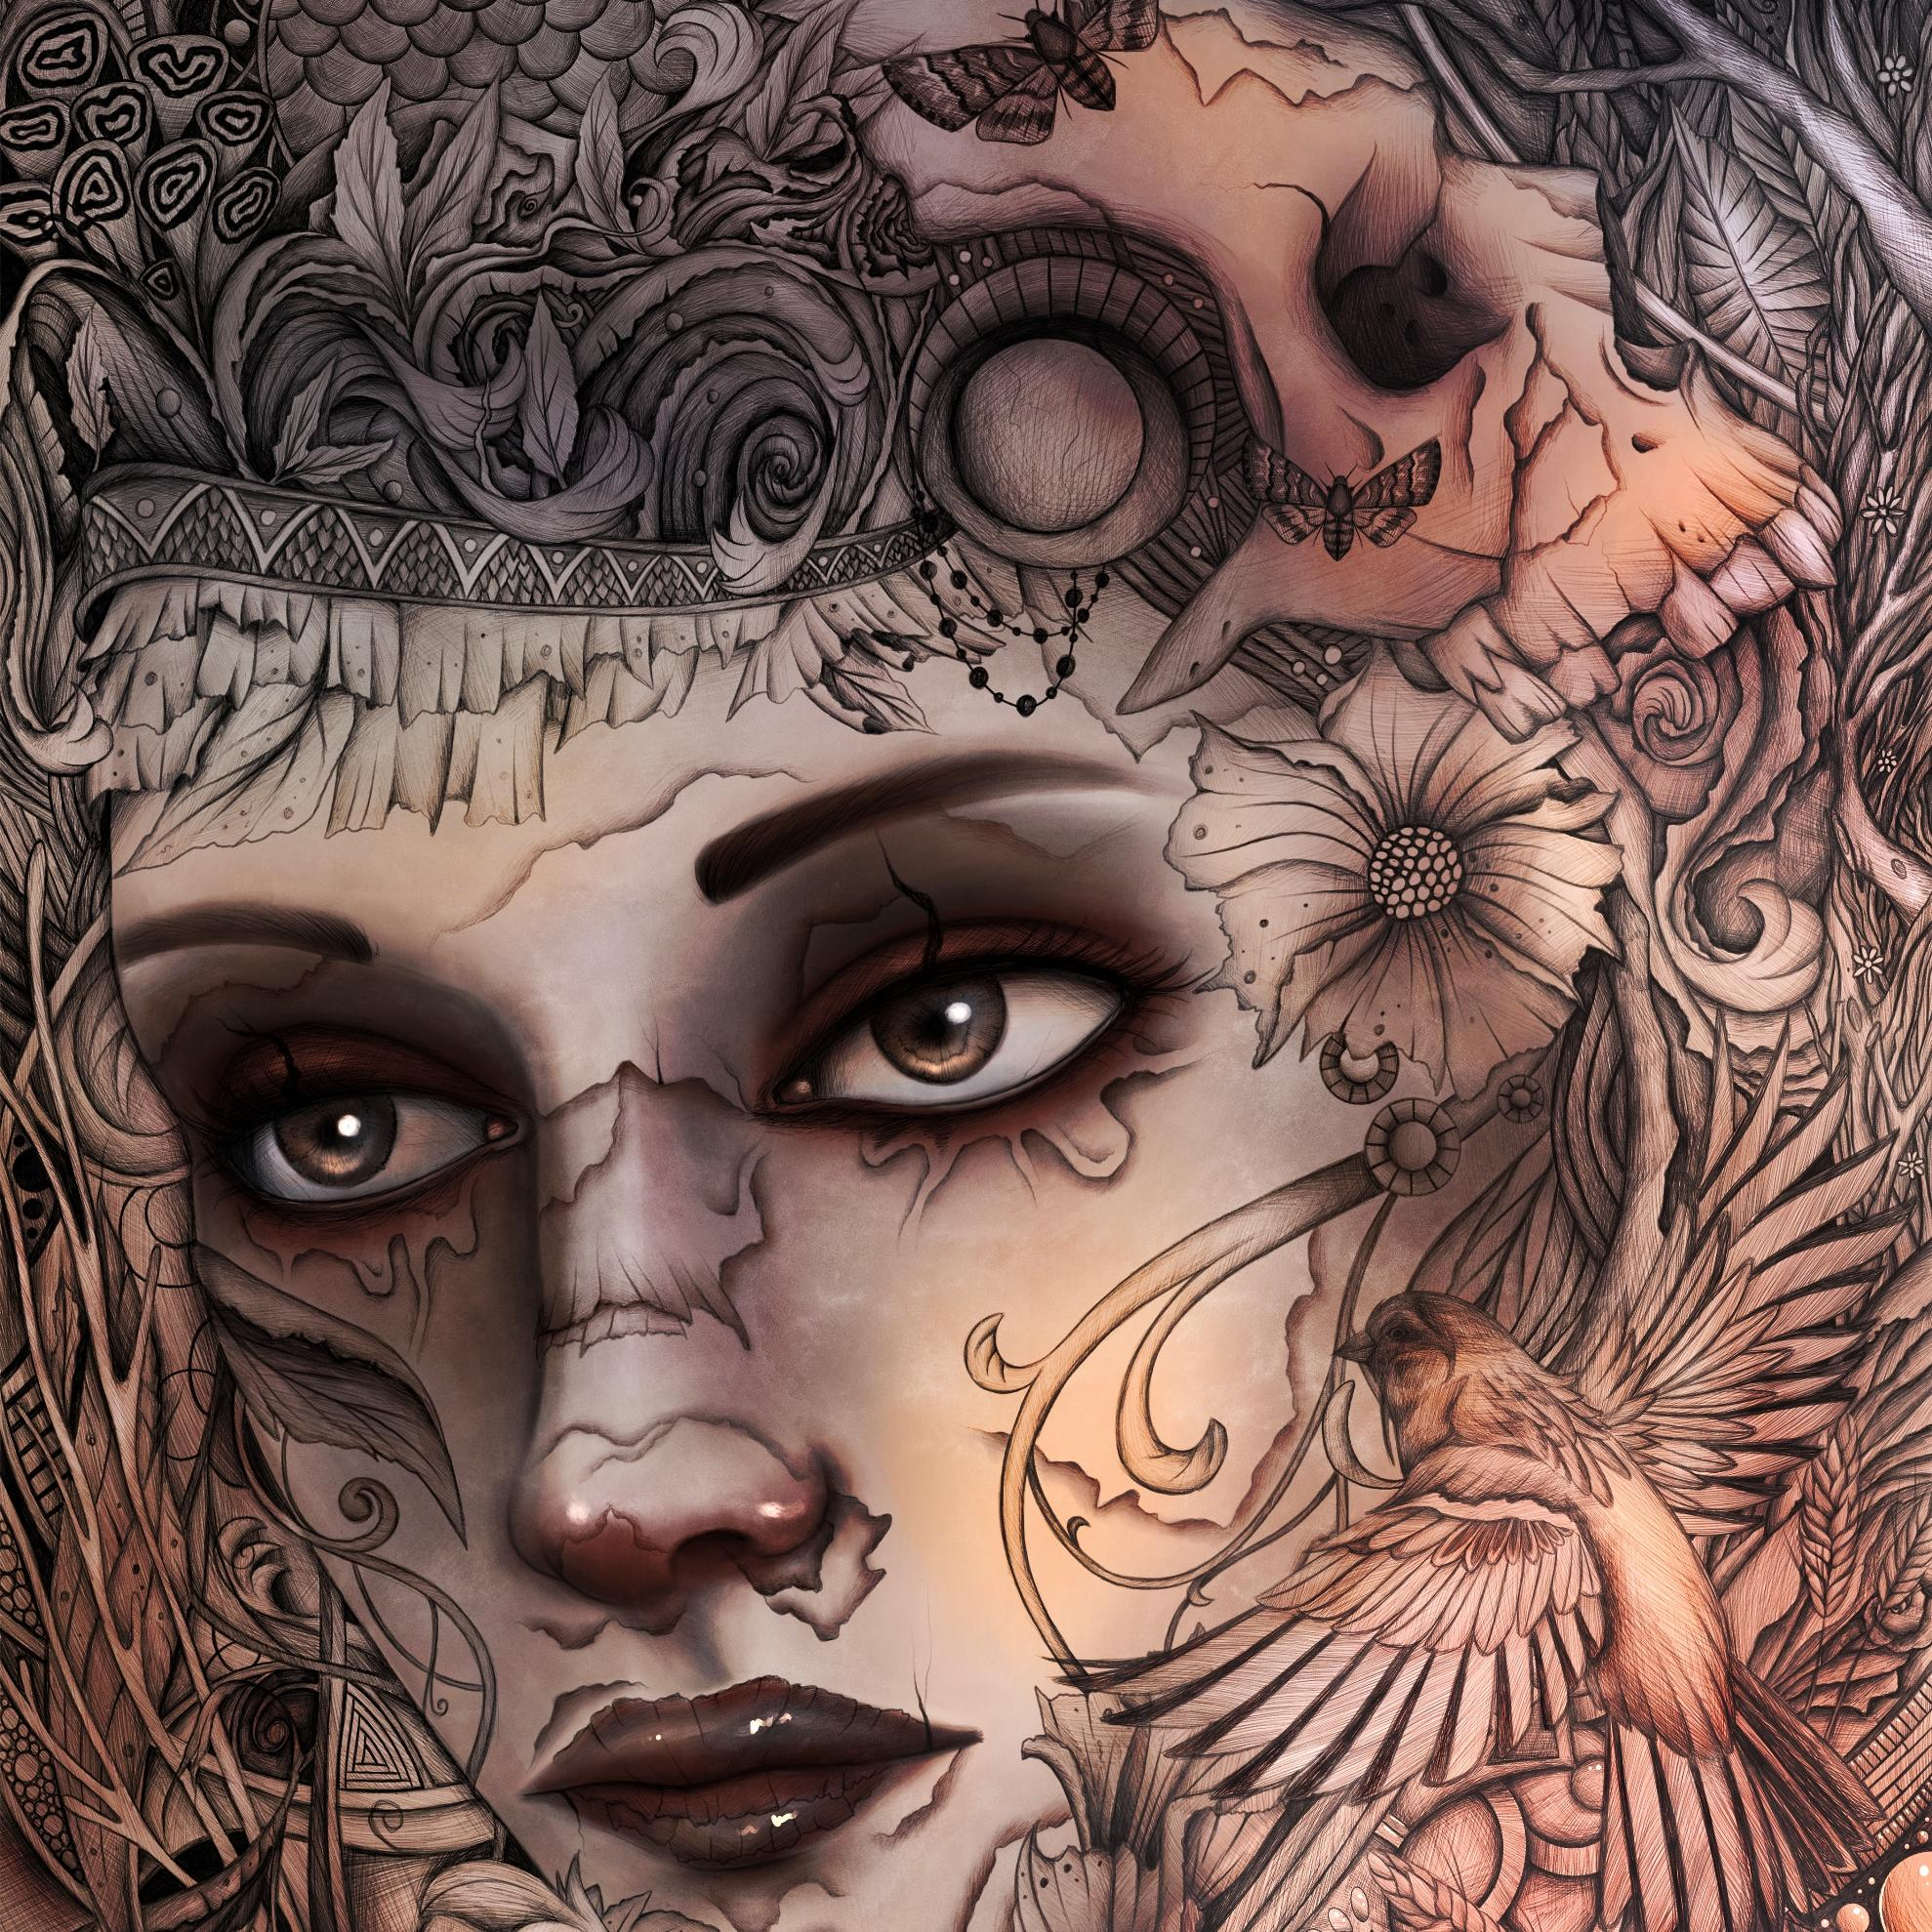 A digital painting by Lily Bourne printed on eco fine art paper titled Kalopsia showing an intricate line drawing of a female face with a bird and skull.